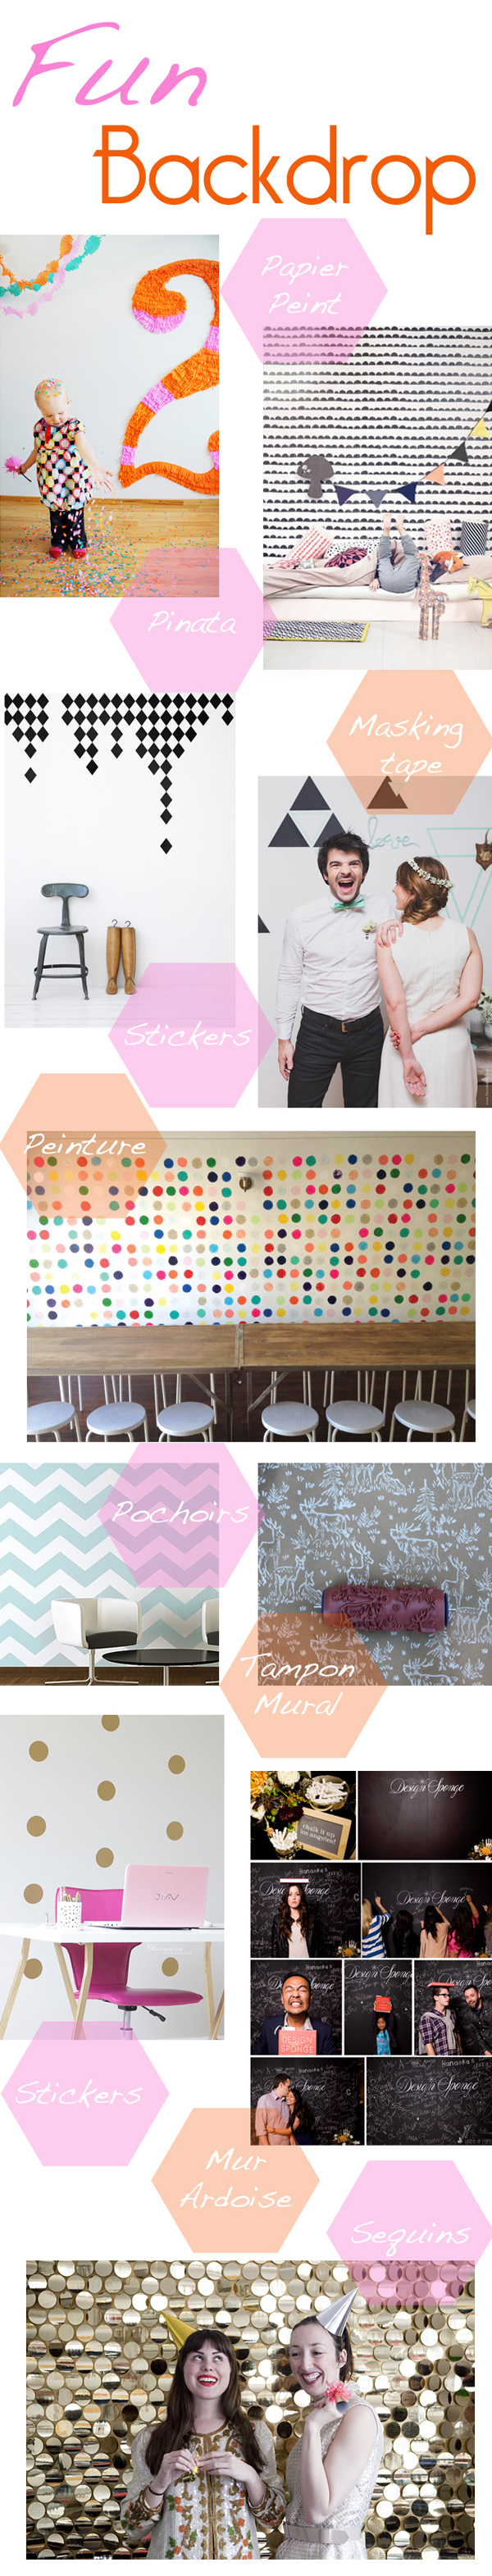 weddingland-backdrops-photobooths